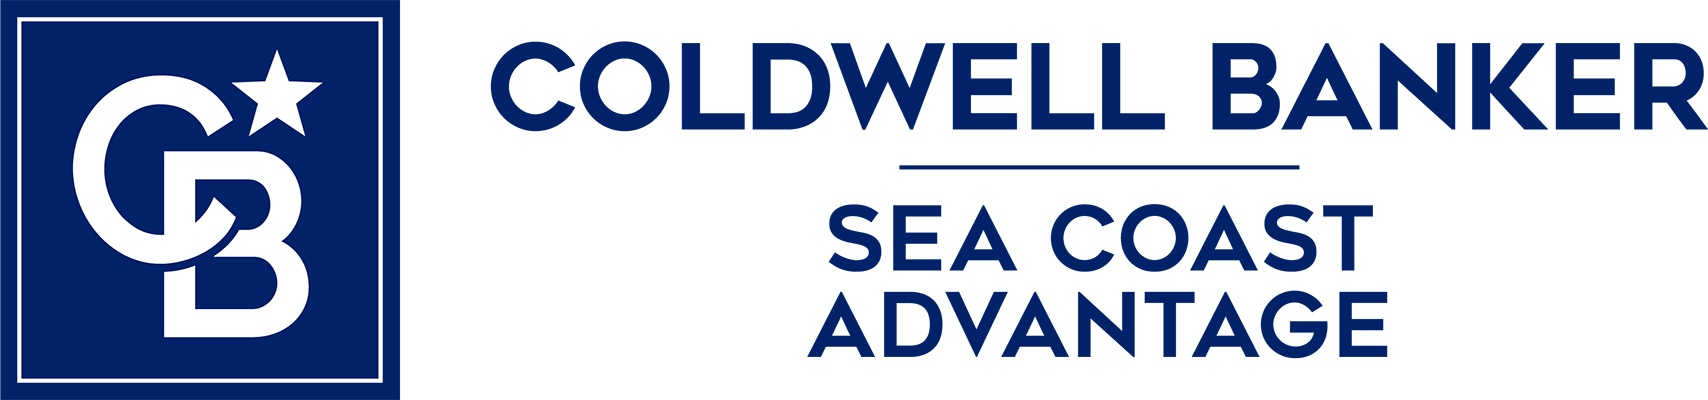 Mary Elizabeth Roberts - Coldwell Banker Sea Coast Advantage Realty